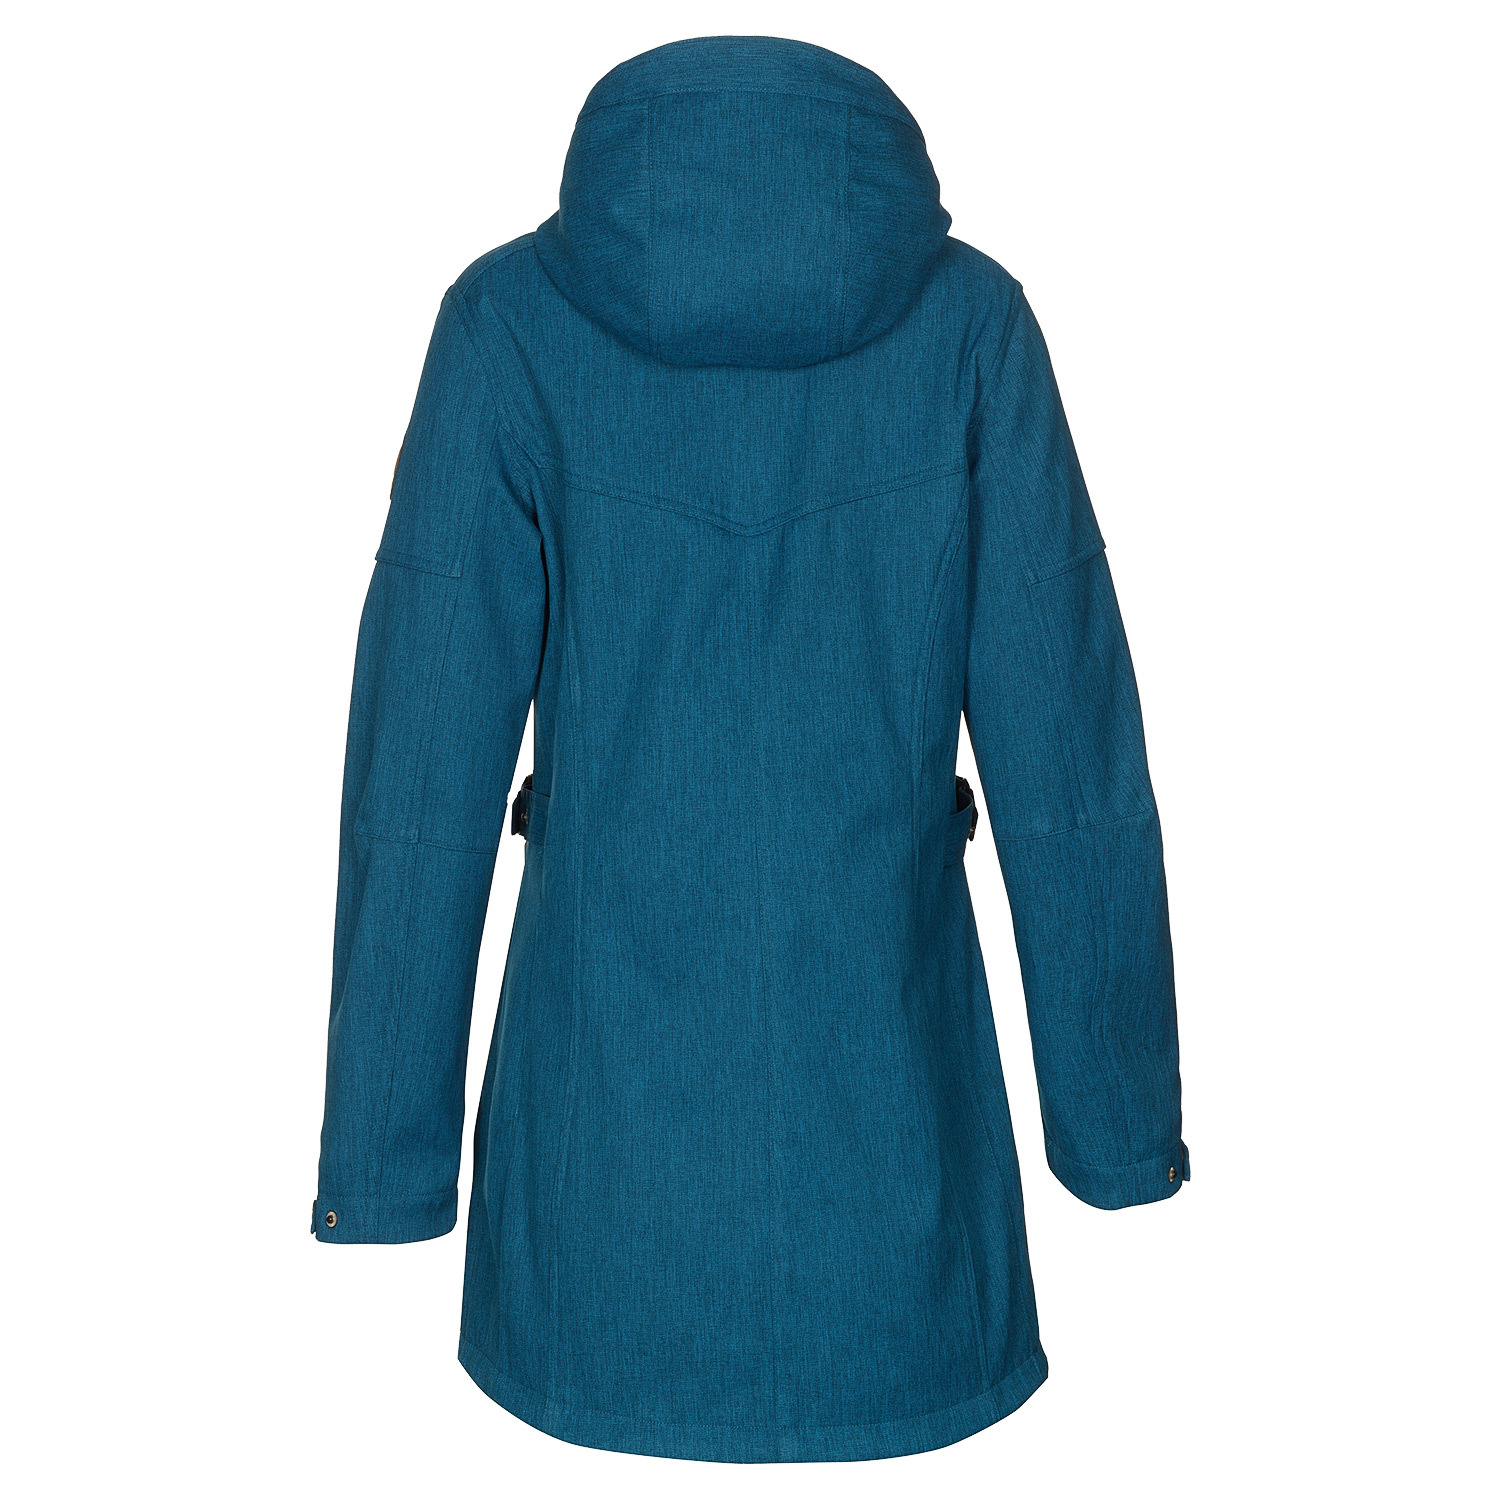 killtec jacke parka gr 50 casual mantel damen softshell matava ocean blau ebay. Black Bedroom Furniture Sets. Home Design Ideas